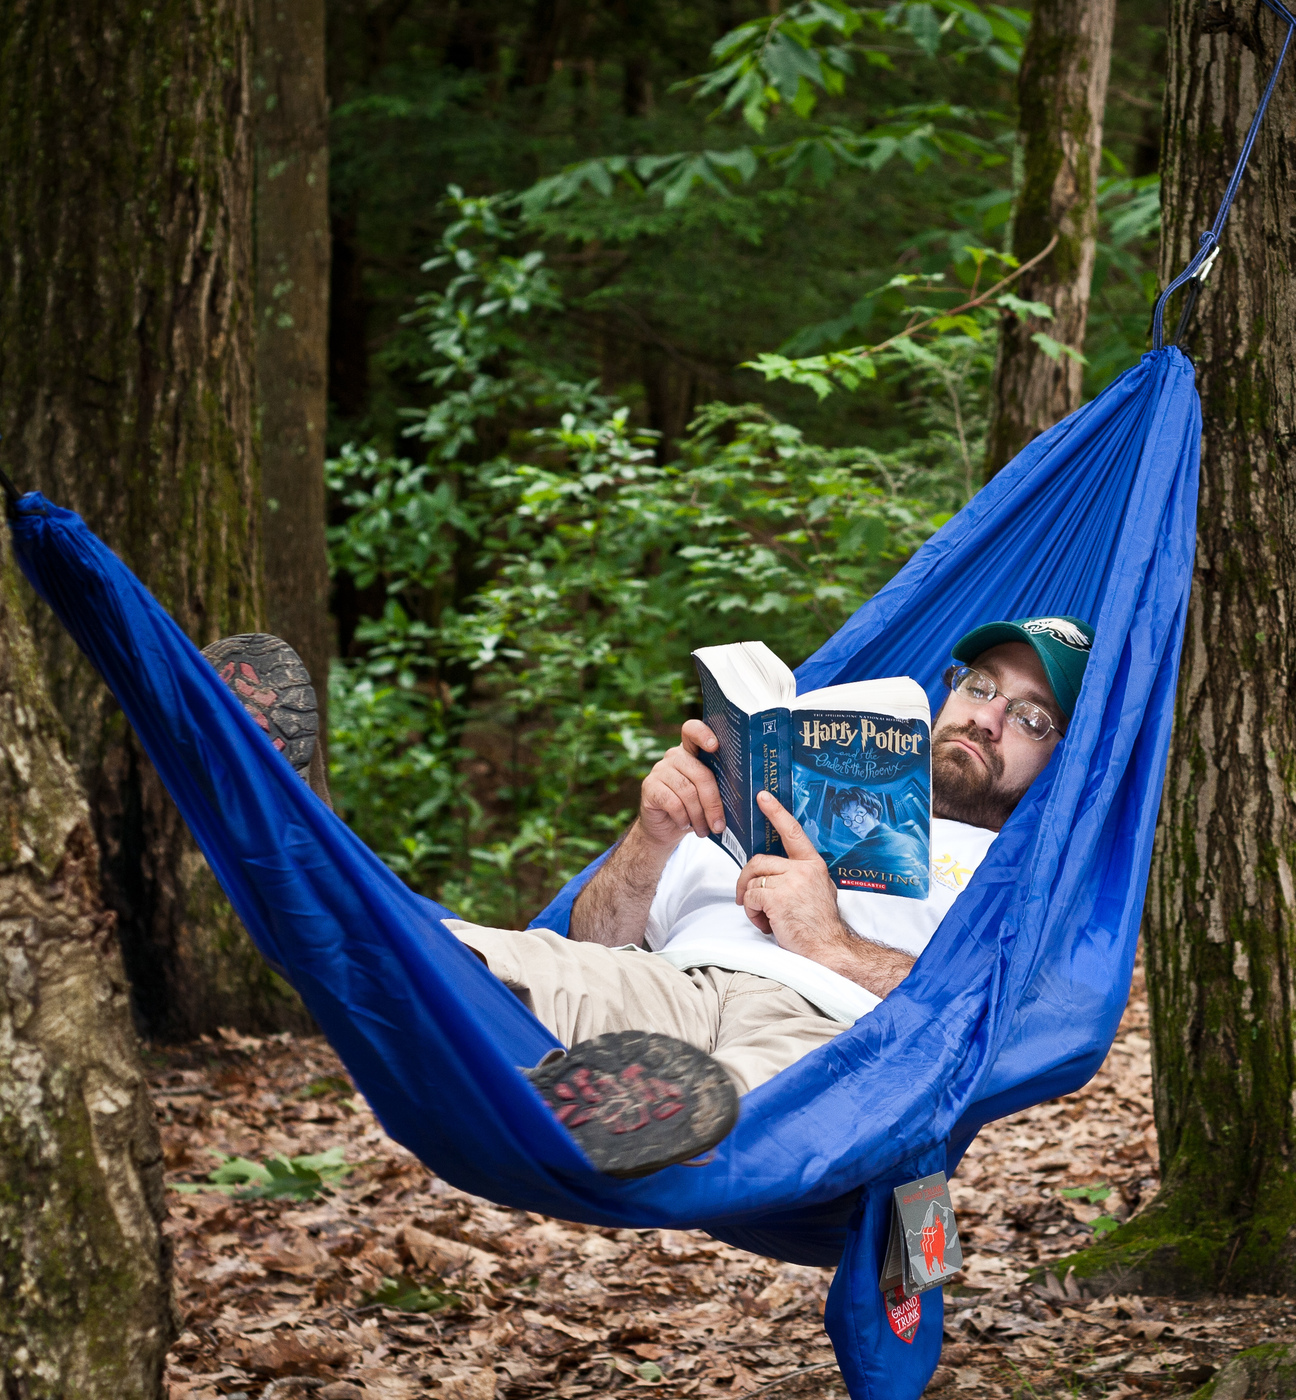 Best Camping Hammock Under 100 Authorized Boots